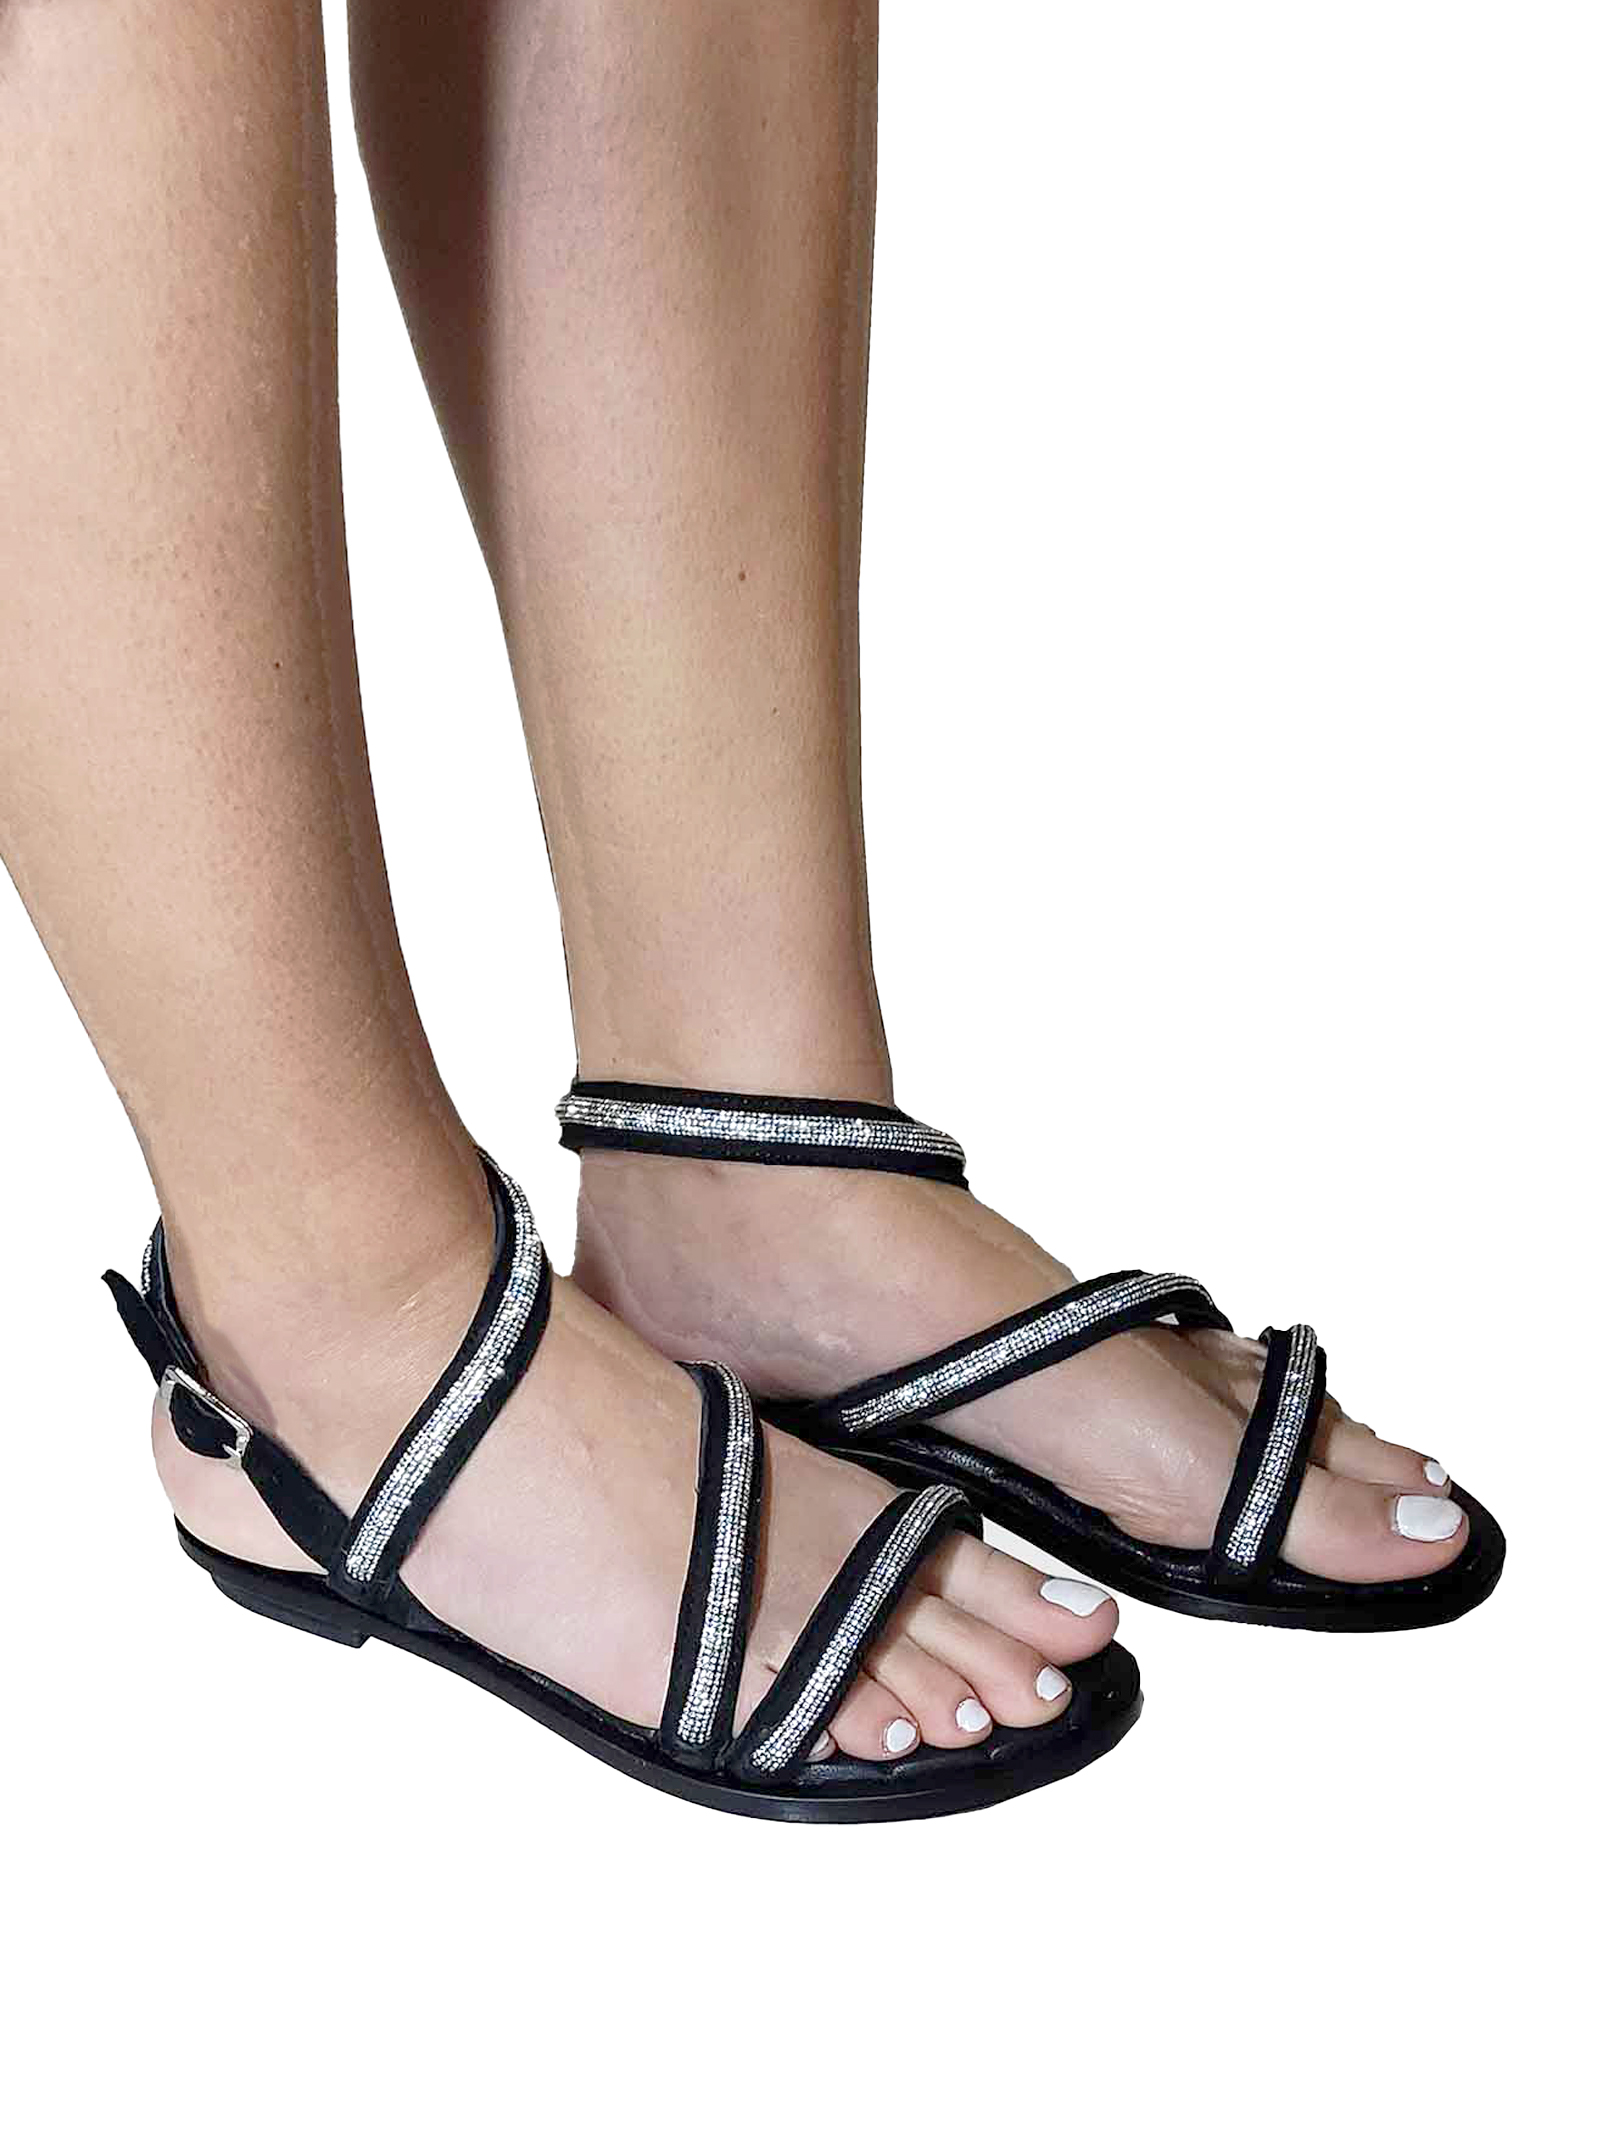 Women's Shoes Flat Sandals in Black Suede with Strass Straps and Ankle Strap Hadel   Flat sandals   1SA539001